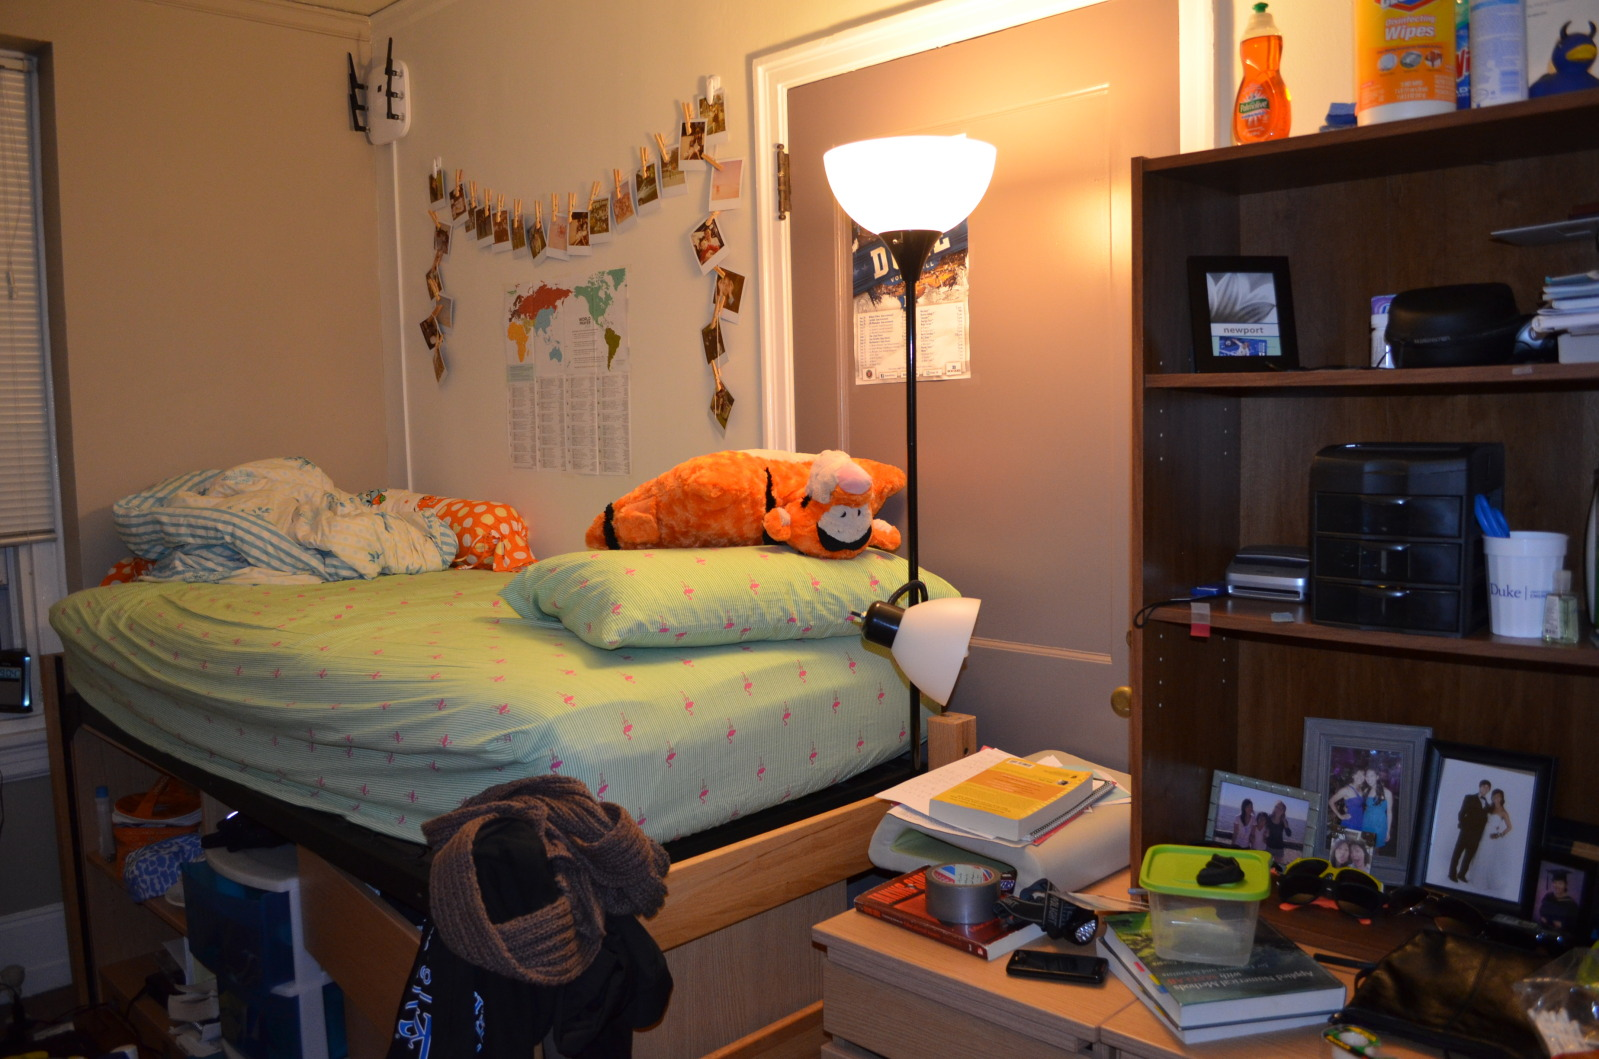 Denison University Dorm Rooms